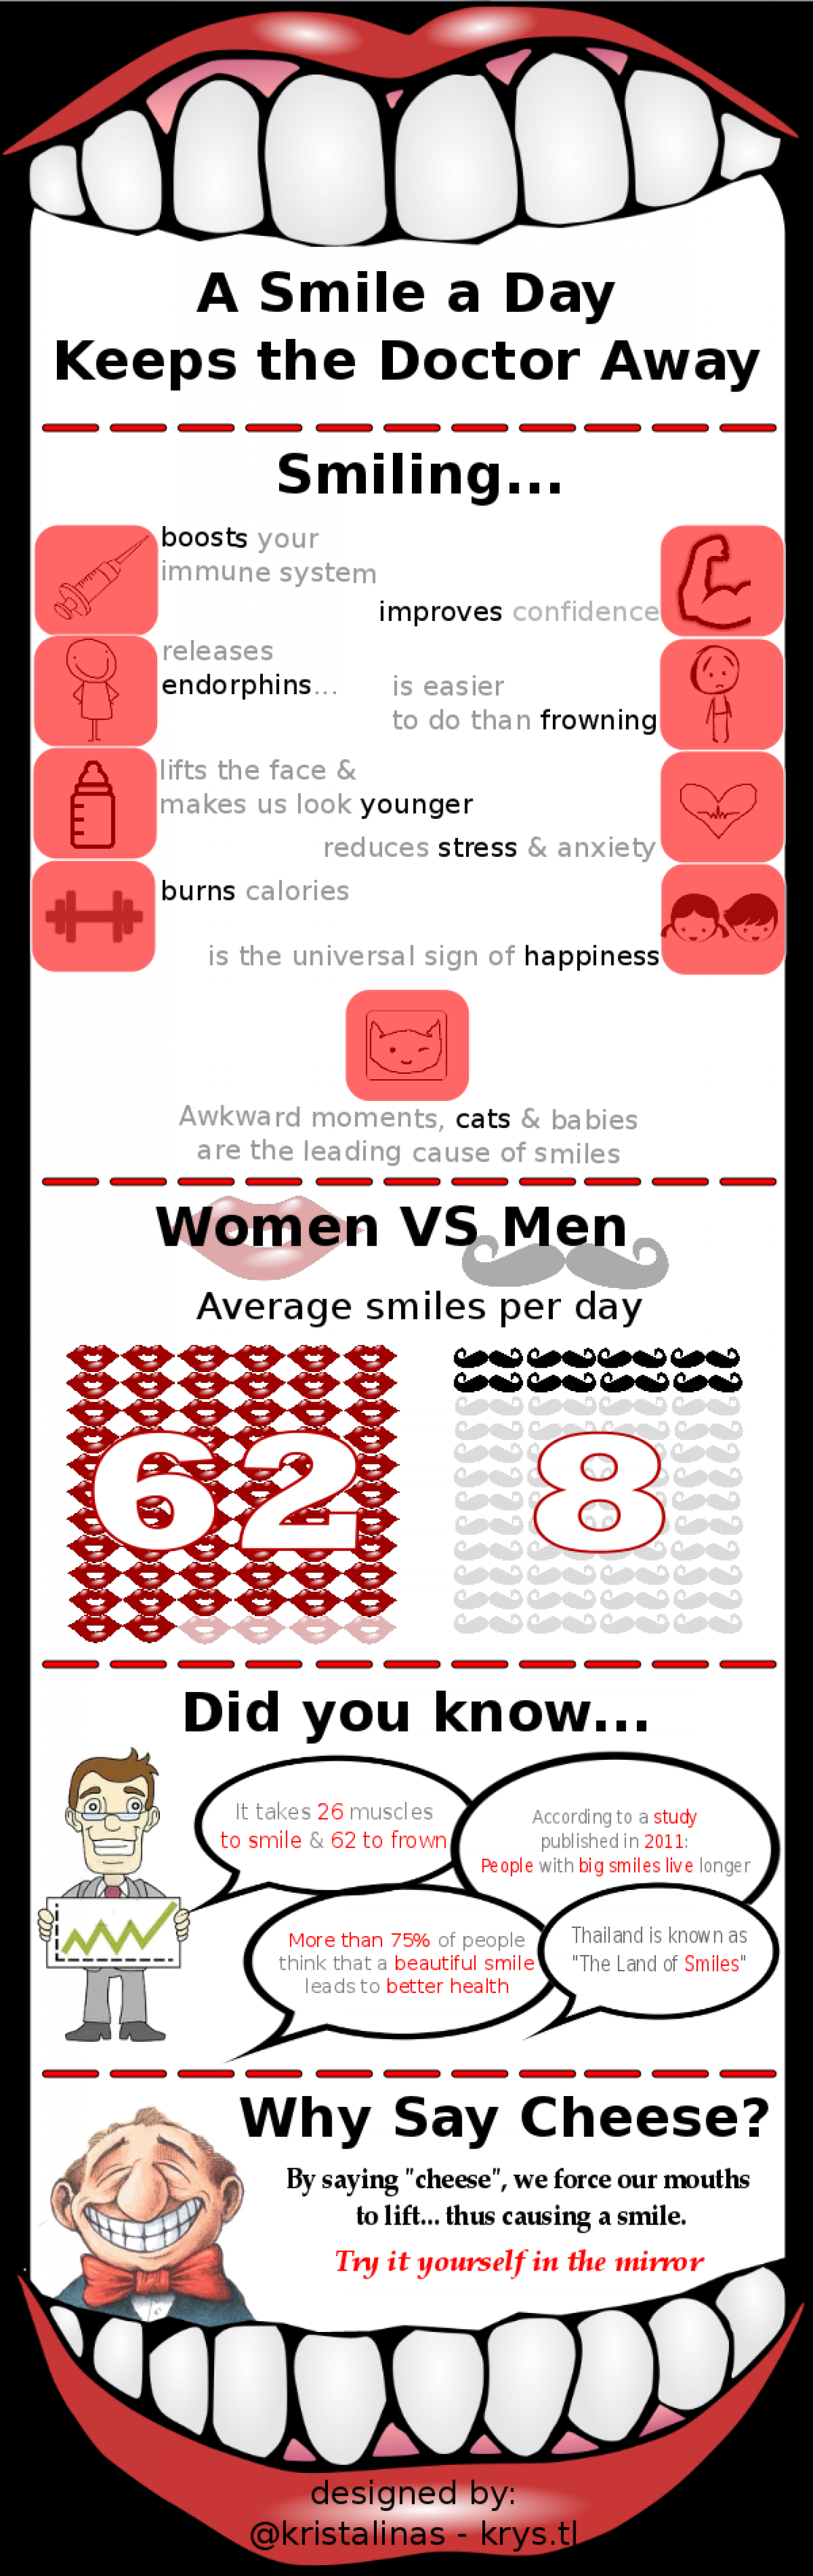 A Smile a Day Keeps the Doctor Away Infographic